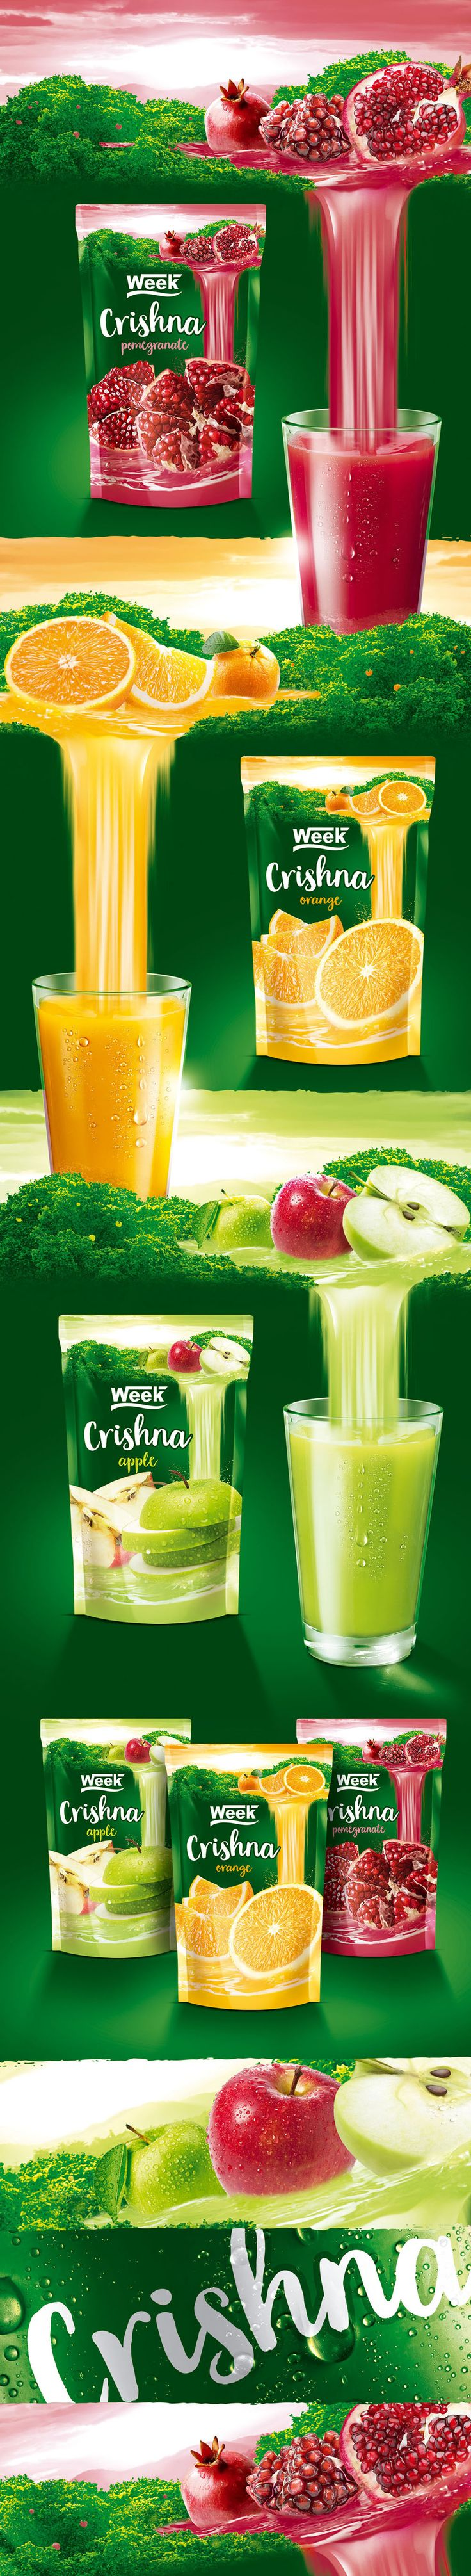 https://www.behance.net/gallery/52193327/Crishna-Fruit-Juice